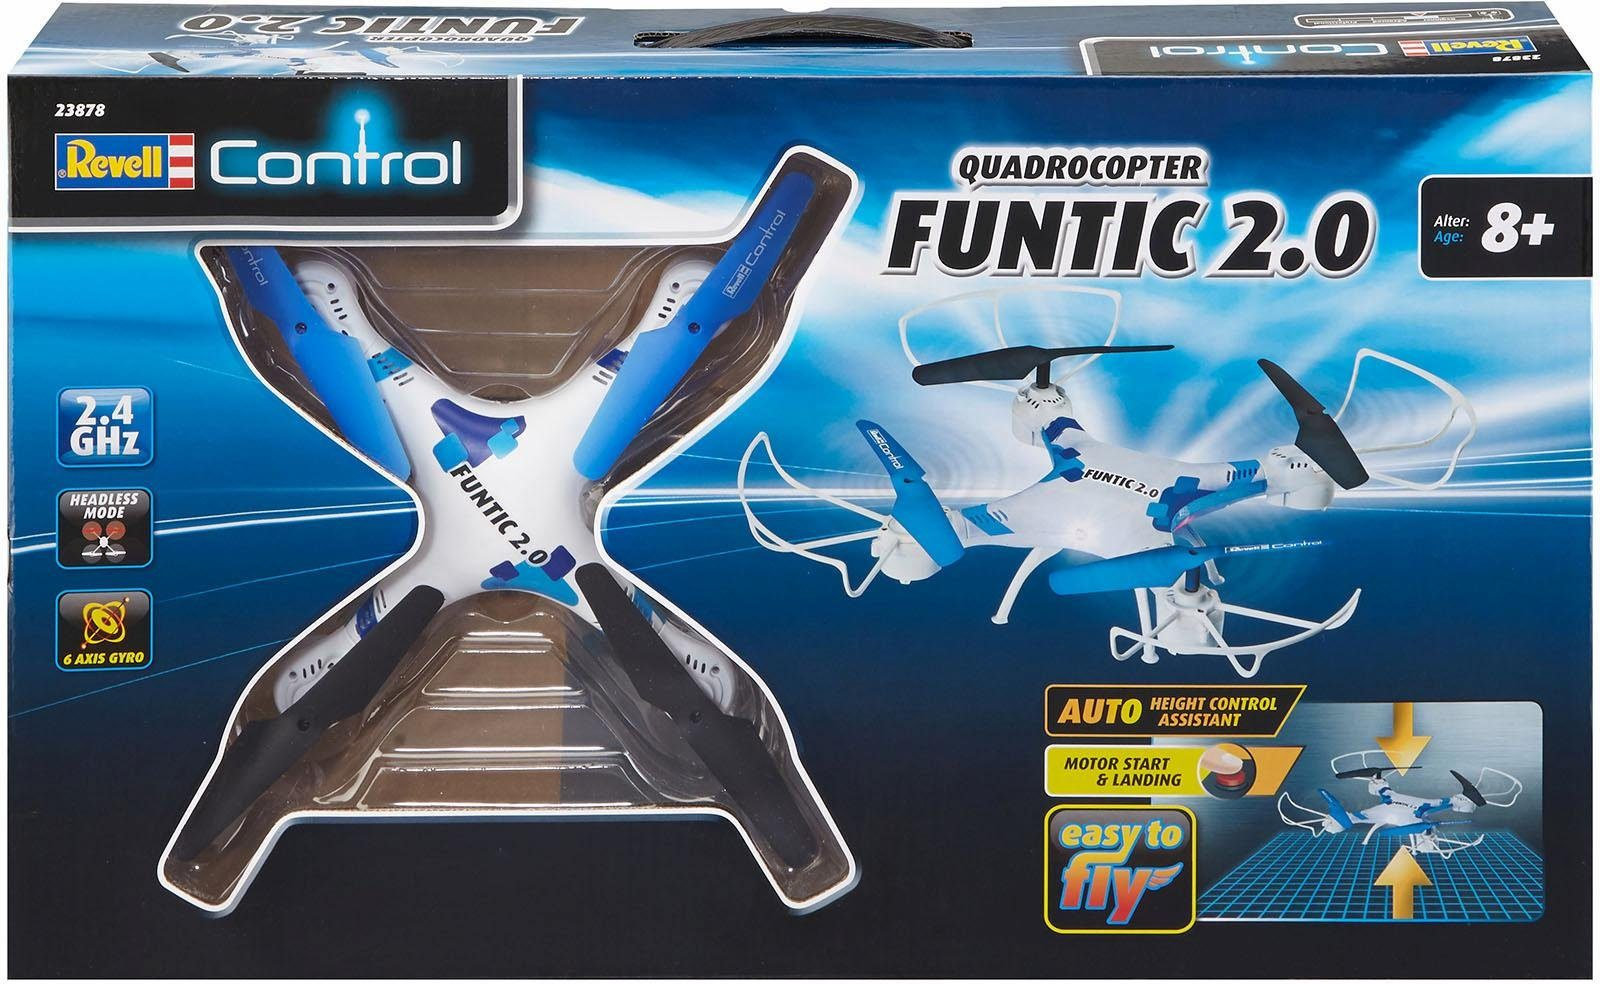 Revell RC Quadrocopter, »Revell® control, Funtic 2.0, 2,4 GHz«